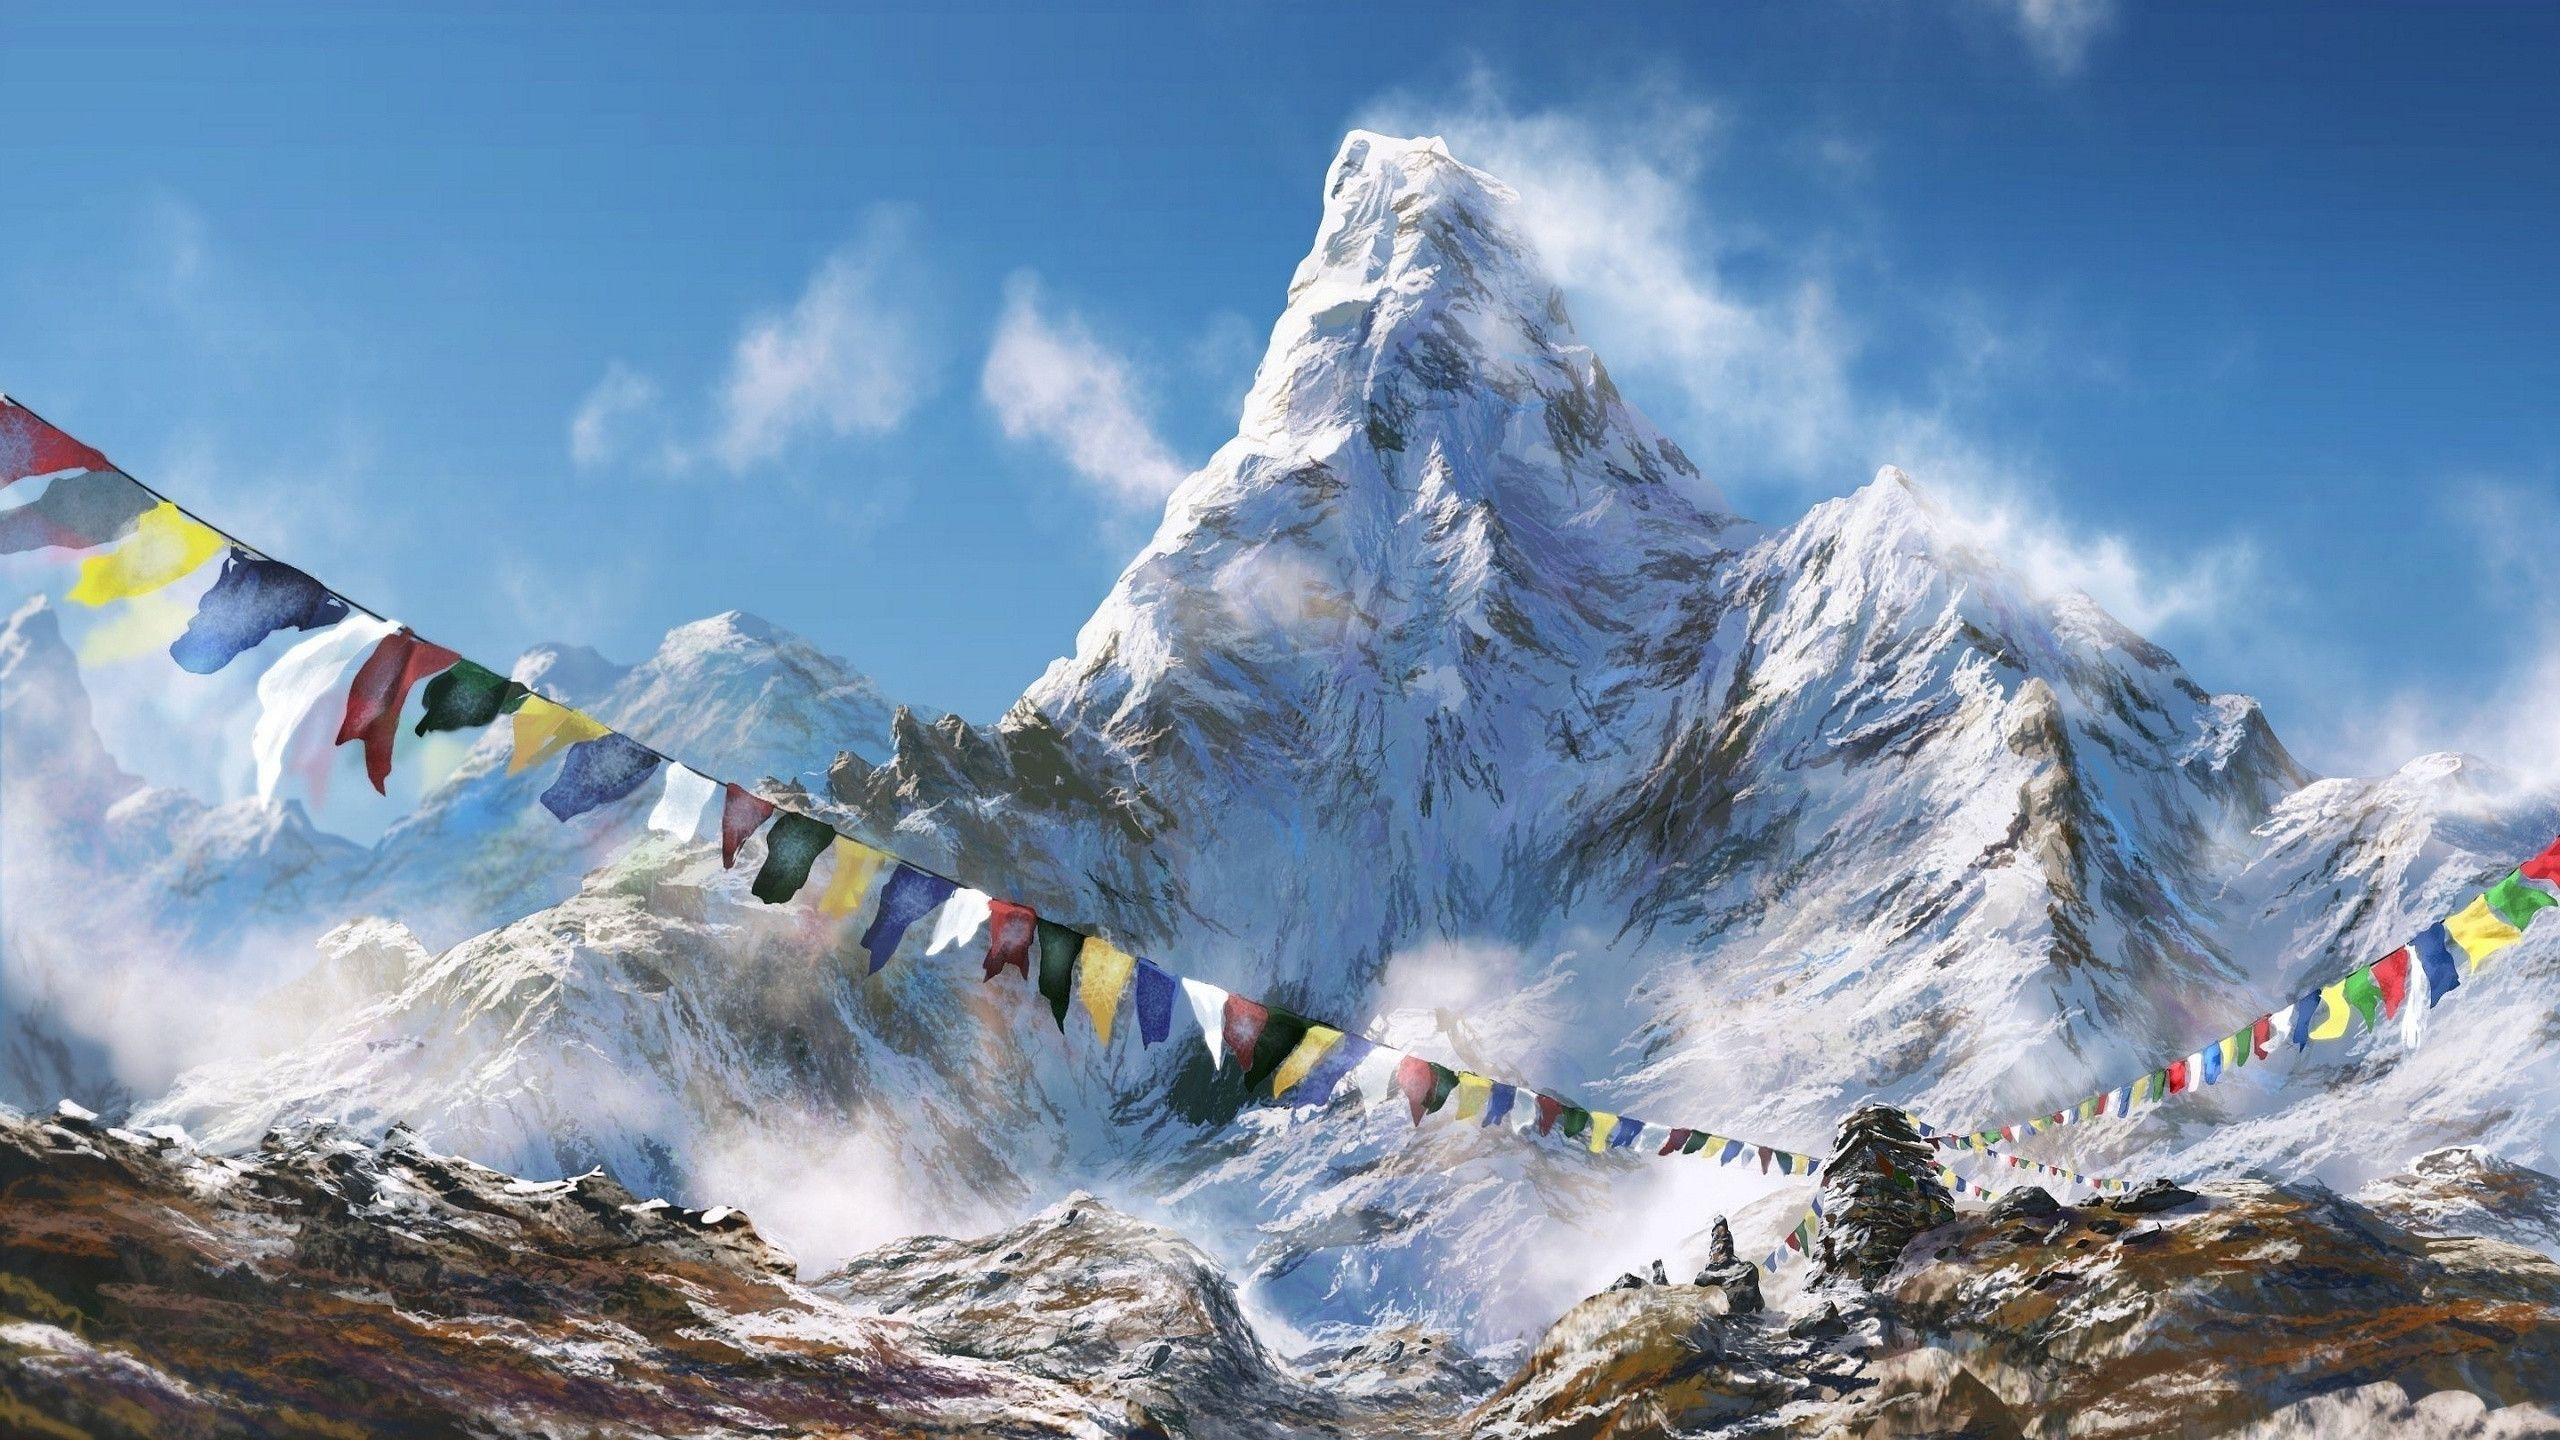 2560x1440 Mount Everest Nepal iPhone wallpapers backgrounds x   pics ...